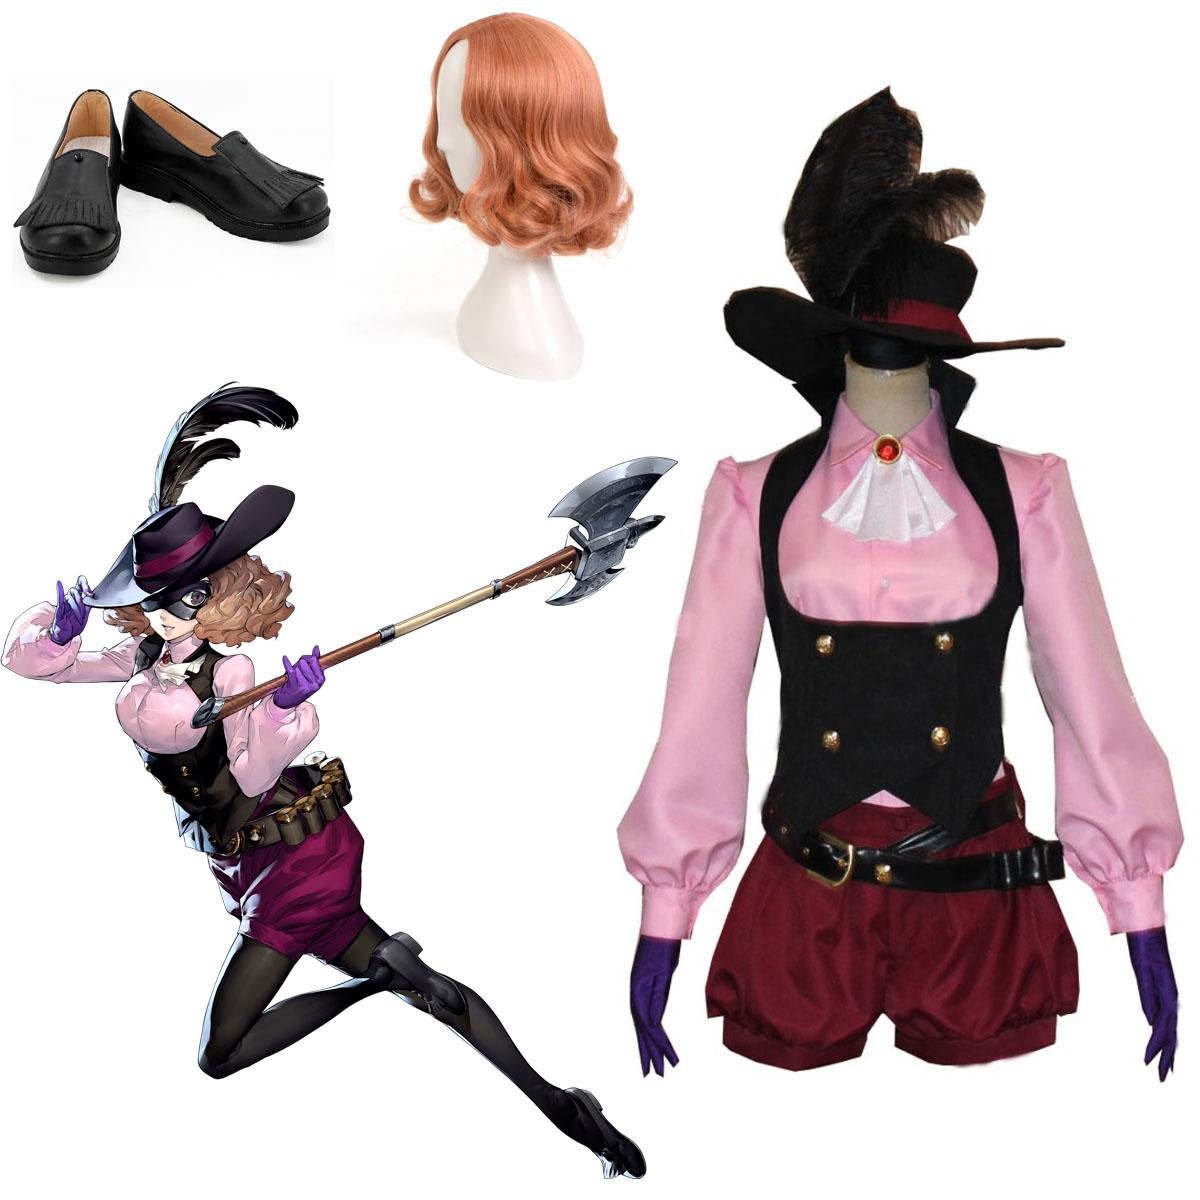 For The Persona 5 Costume Cosplay Haru Okumura Costume Outfit Adult Men Women Girls Personalized Size